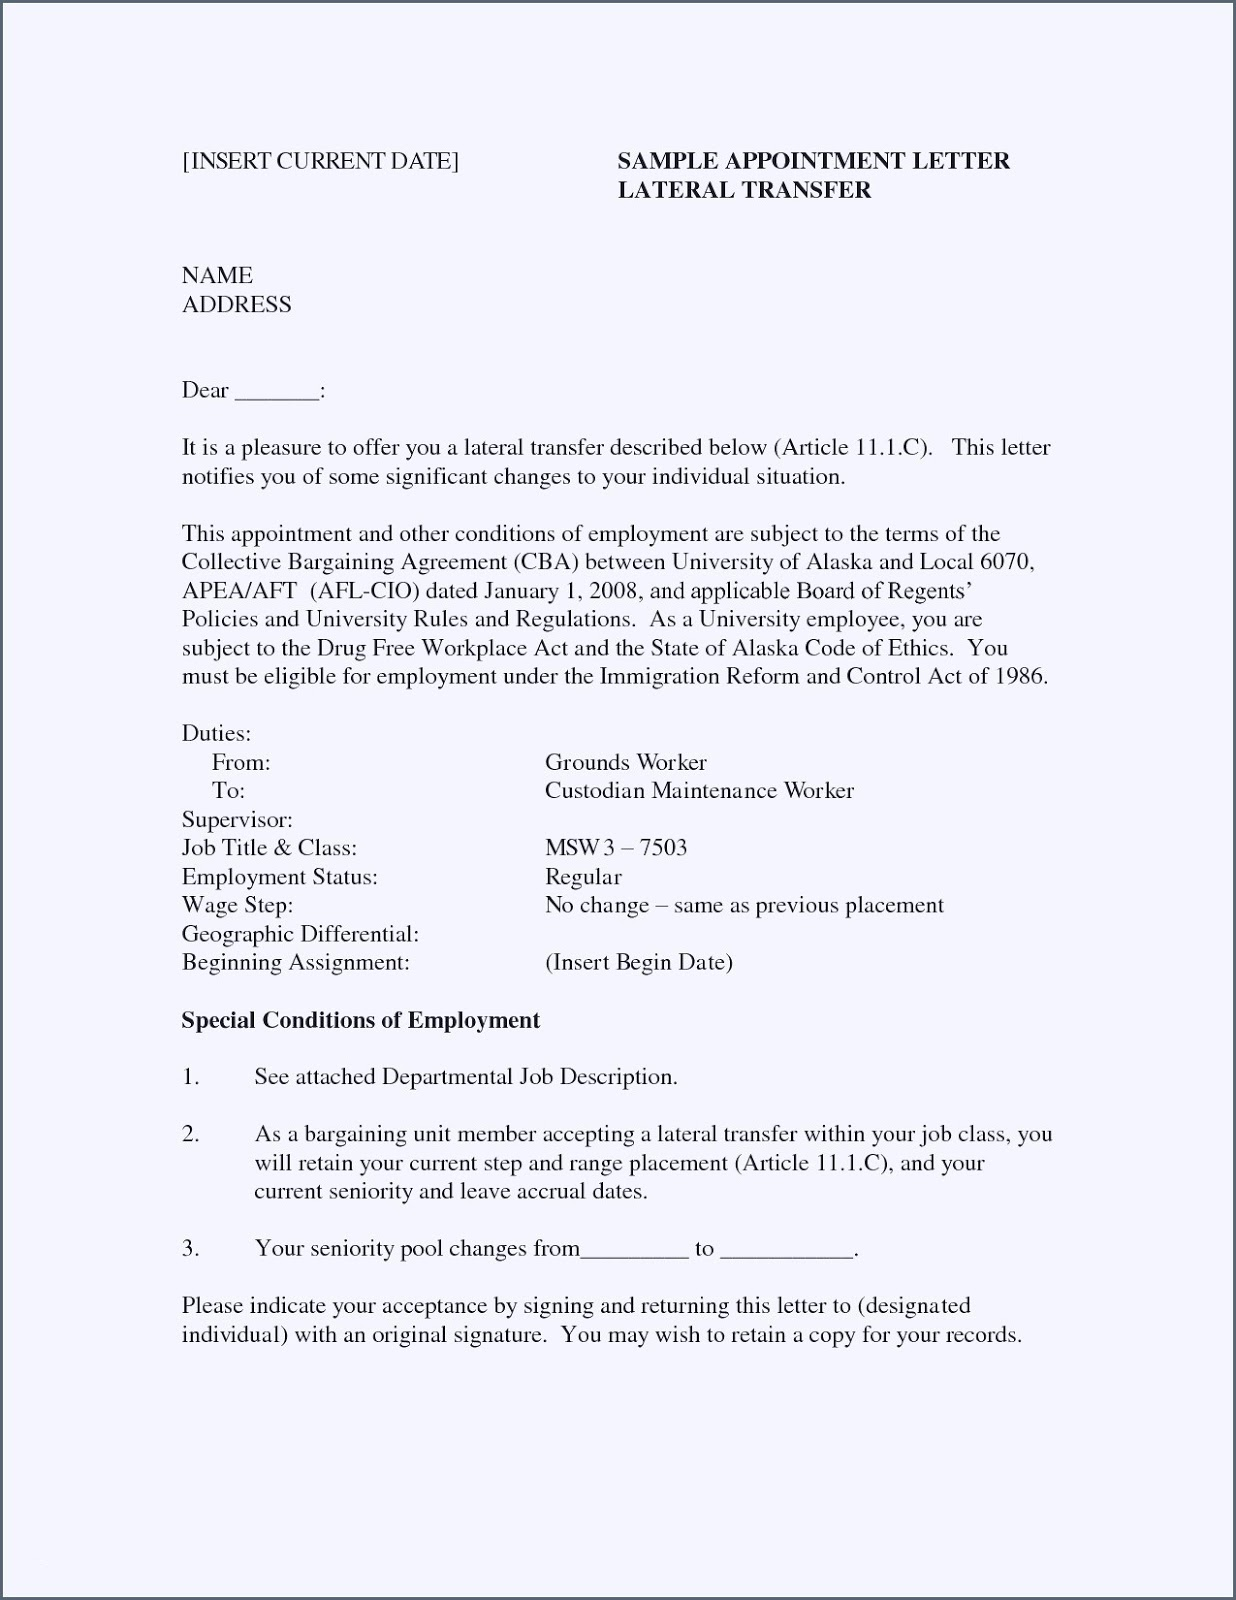 janitorial resume examples best objective for position unloader engineering technician Resume Resume Objective For Janitorial Position